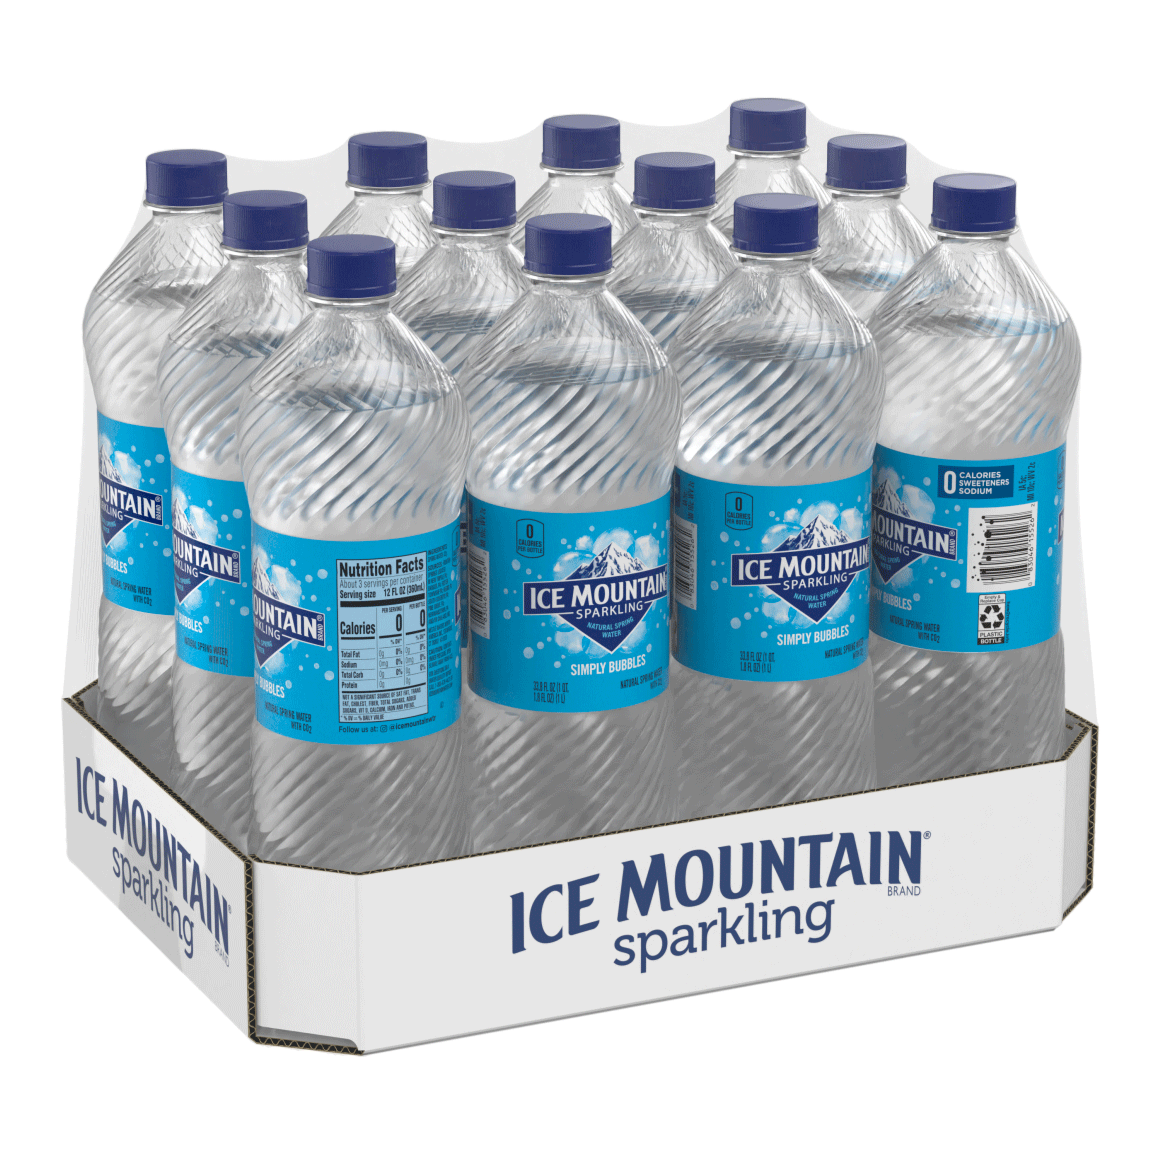 Ice Mountain® Brand Sparkling 100% Natural Spring Water - Simply Bubbles Image1